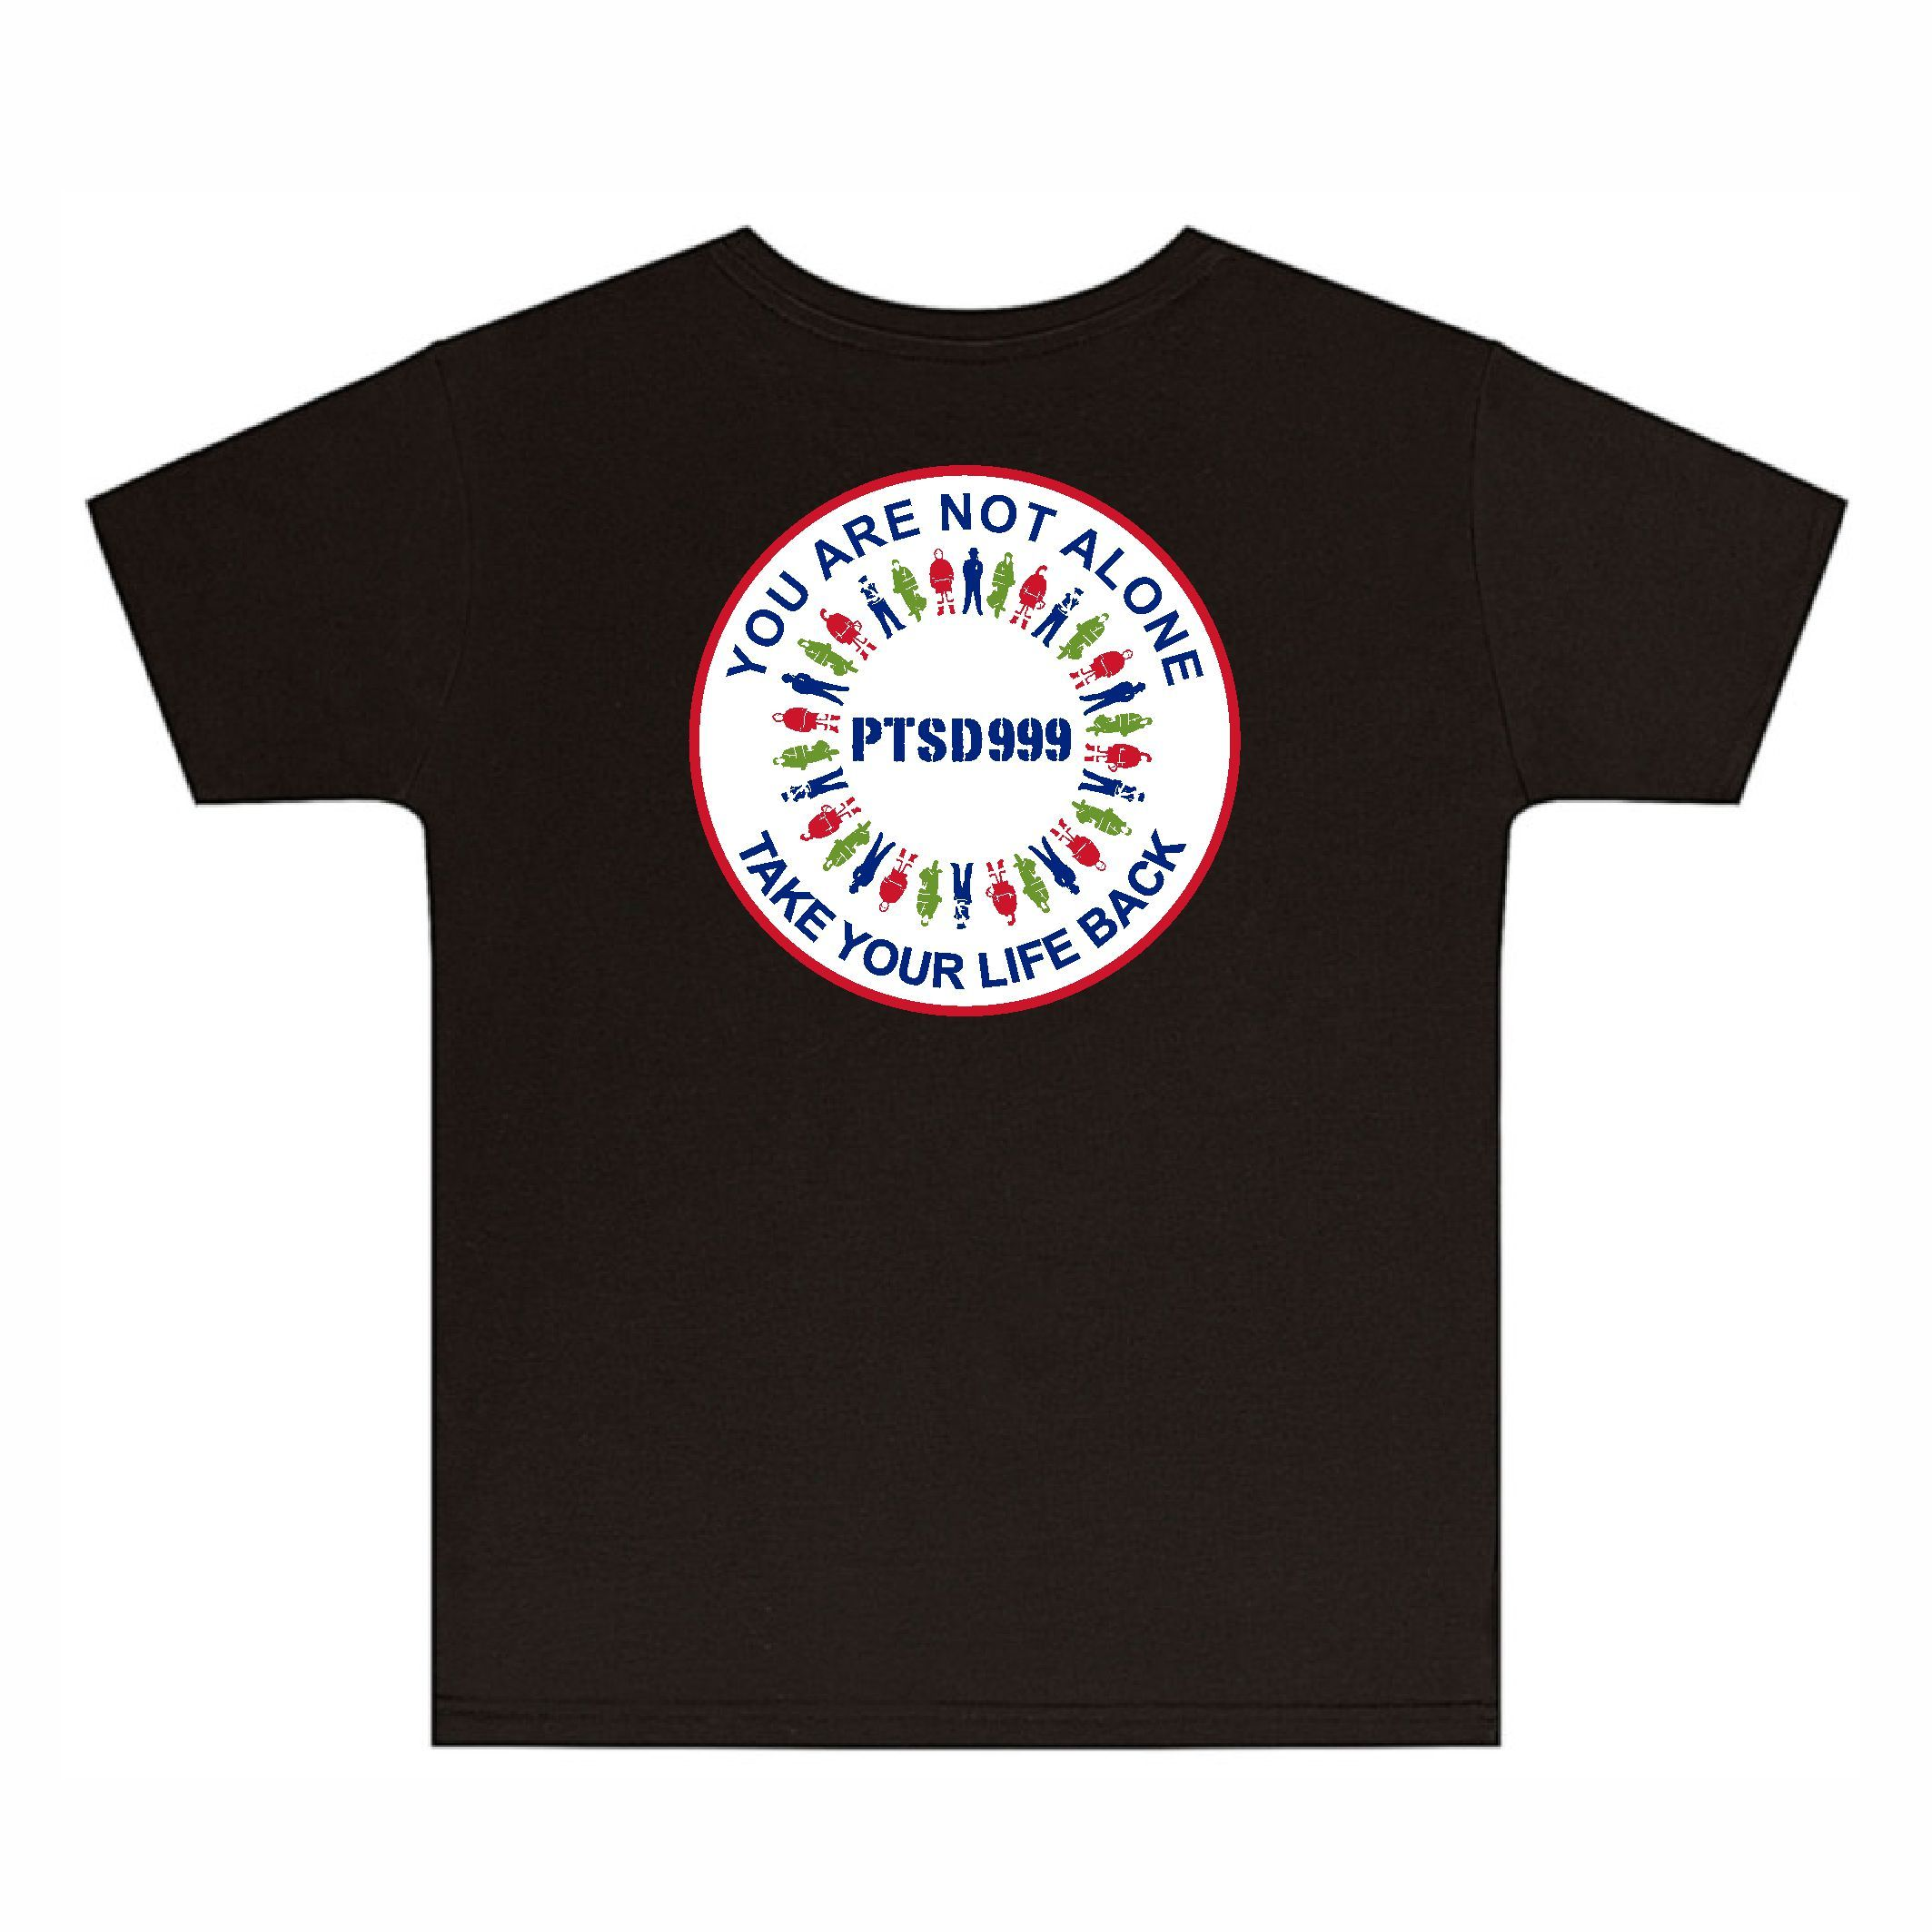 PTSD999- 'You Are Not Alone' Kids Tee